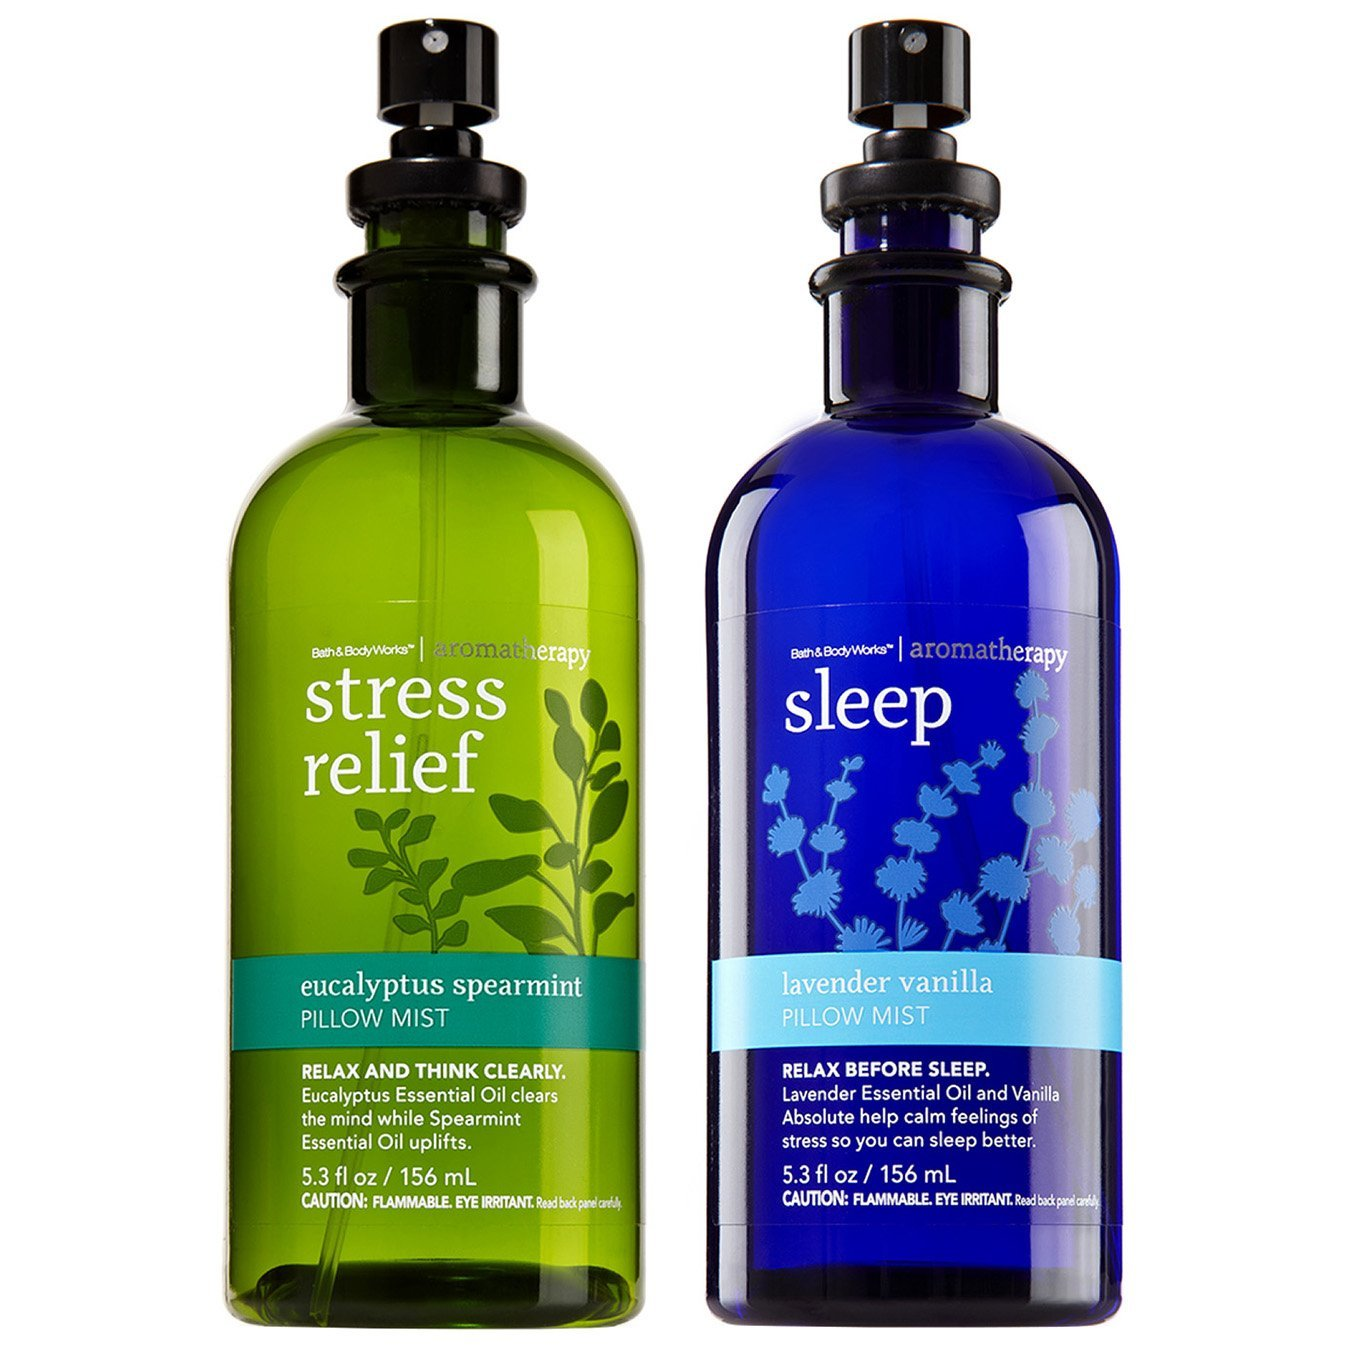 Bath and Body Works Aromatherapy Eucalyptus Spearmint and Lavender Vanilla Pillow Mist Set 5.3 Ounce Original Packaging